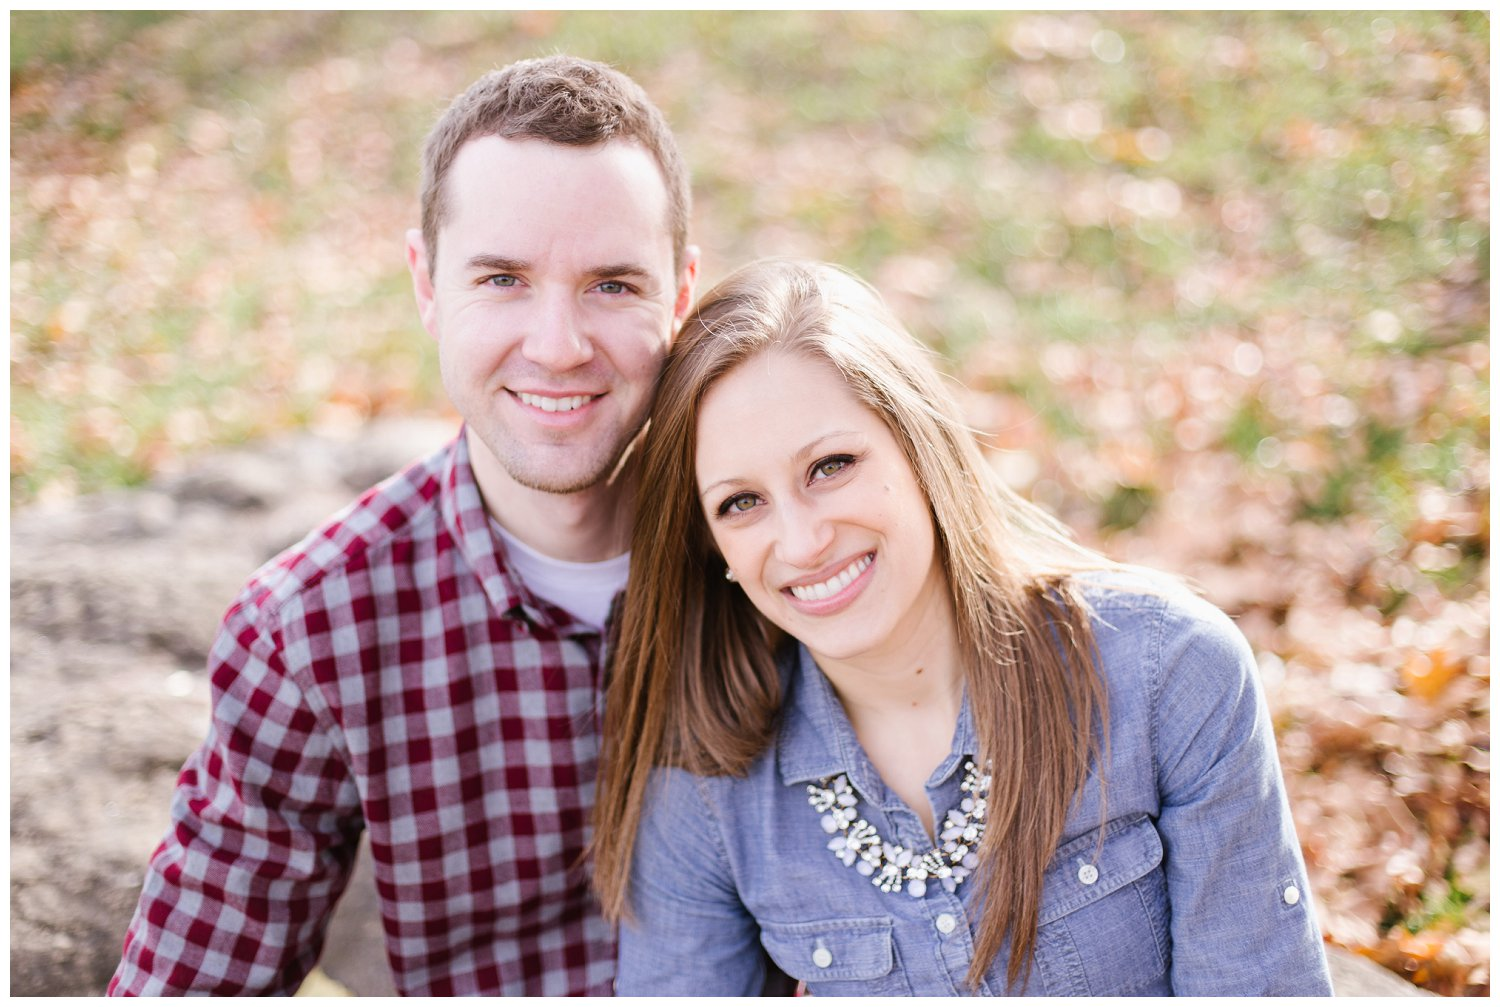 laina-matt-prospect-kentucky-engagement-session_0009.jpg